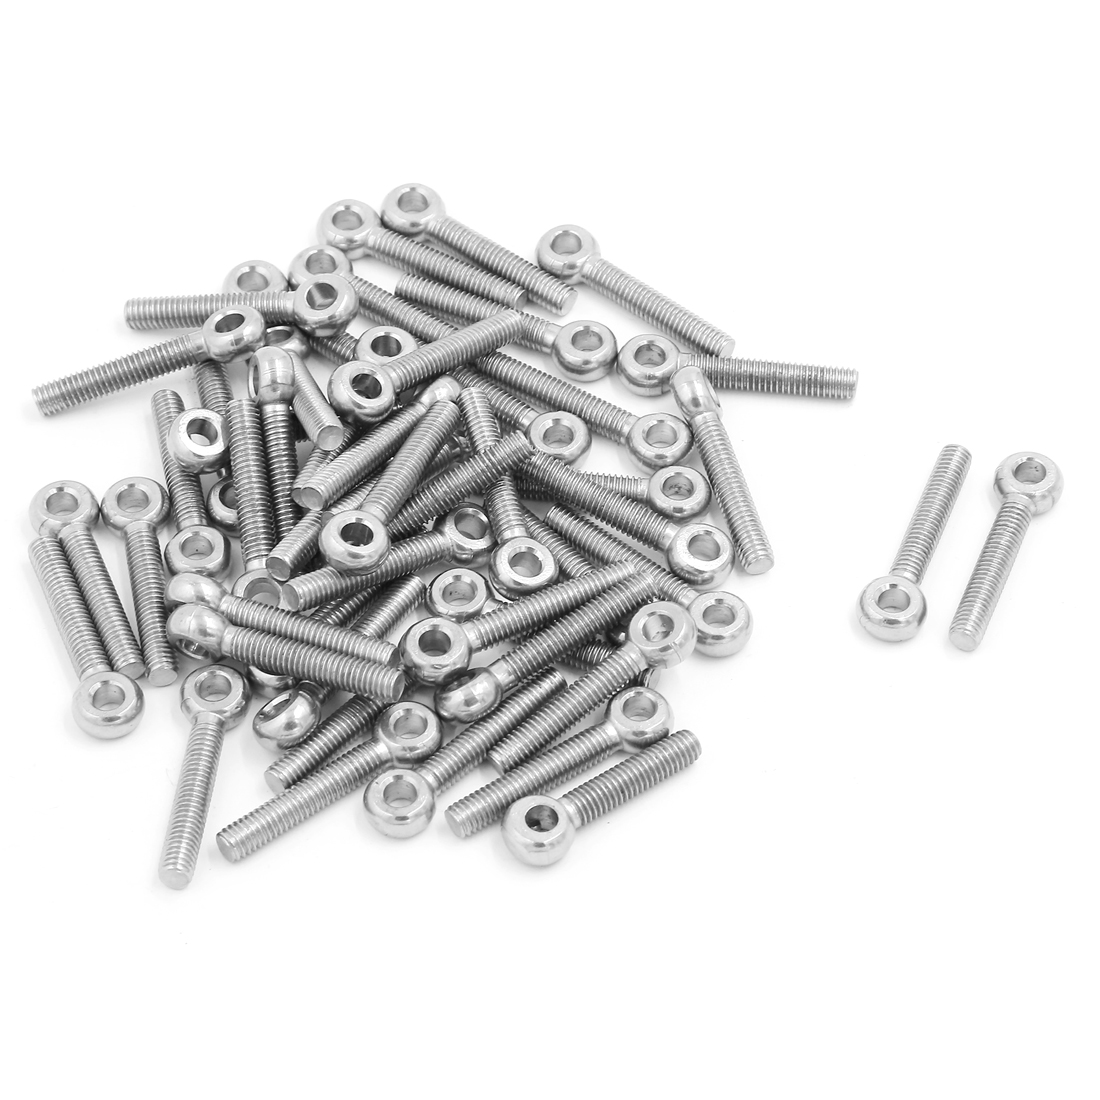 M6 x 20mm 304 Stainless Steel Machinery Shoulder Lifting Eyebolt Eye Bolt 50 Pcs